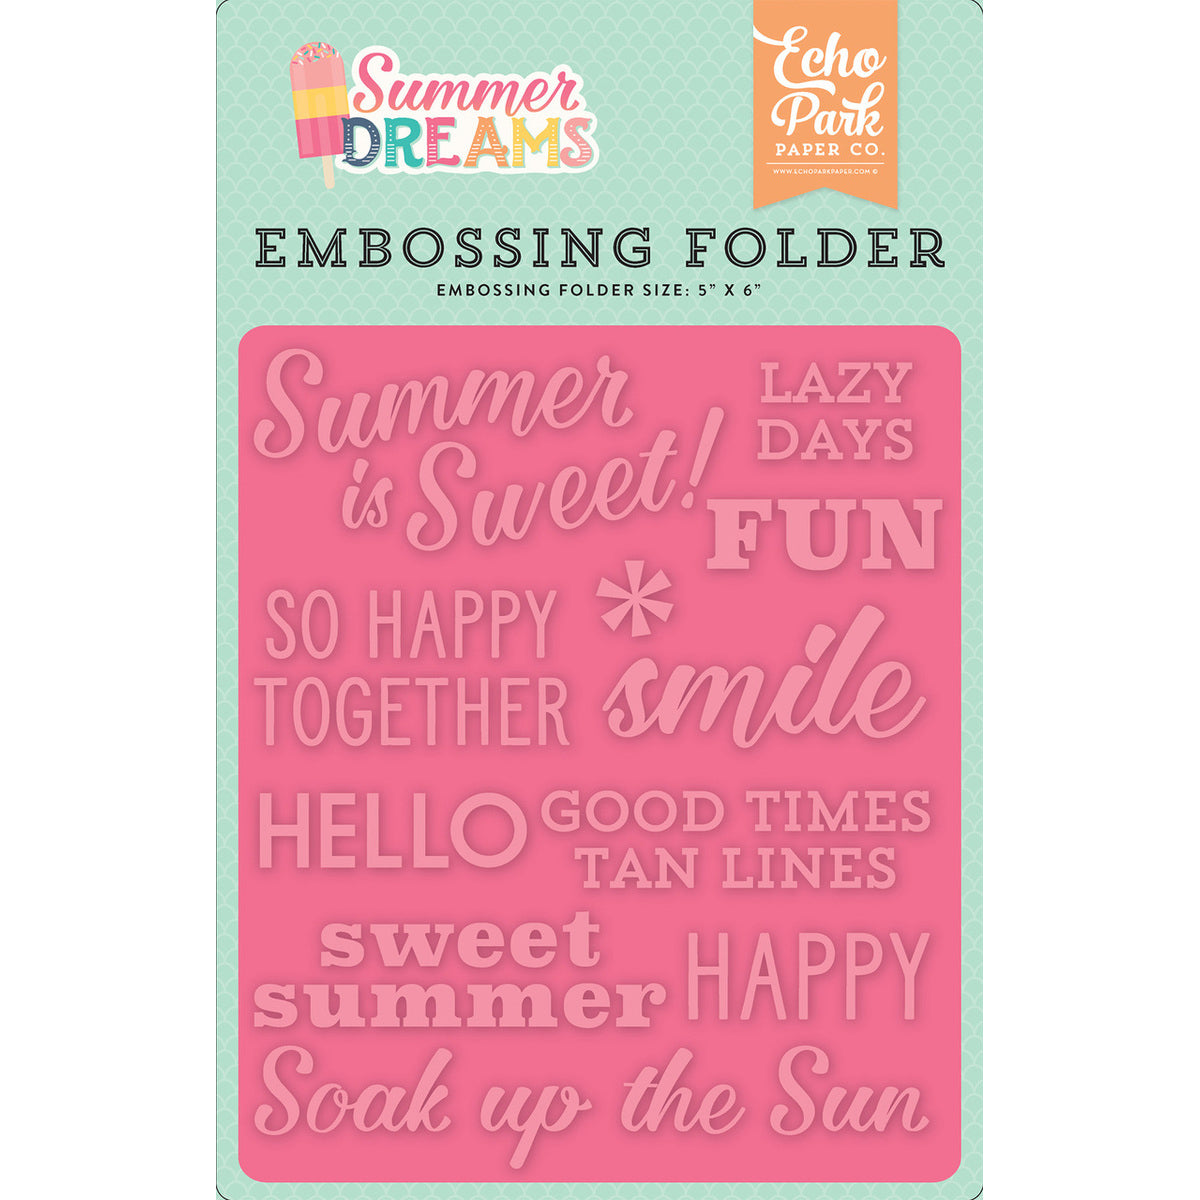 6x5 Embossing Folder: Summer Dreams (Summer is Sweet)